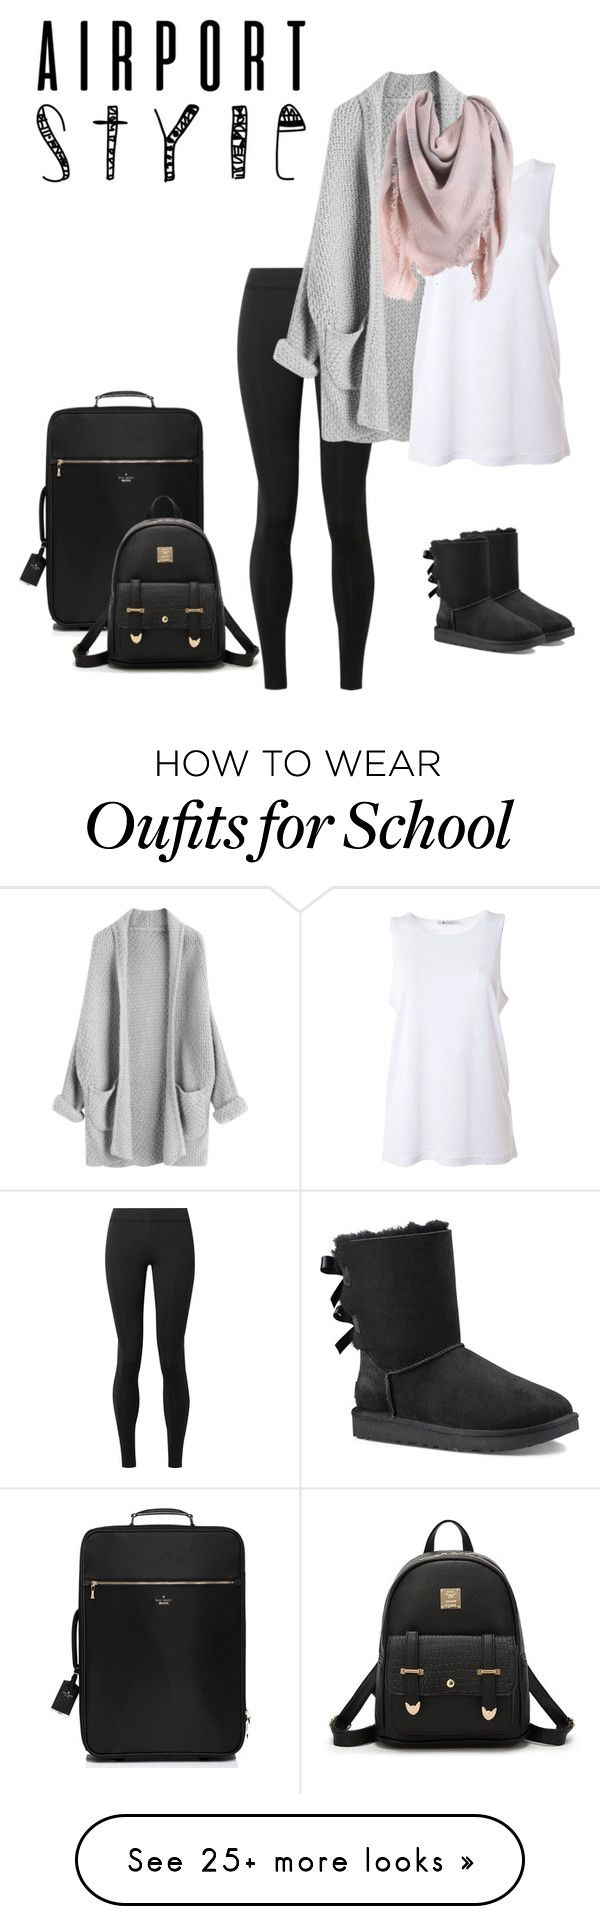 """""""Airport Fashion"""" by stylebyanaliserose on Polyvore featuring The Row, T By Alexander Wang, Kate Spade, UGG and airportstyle"""